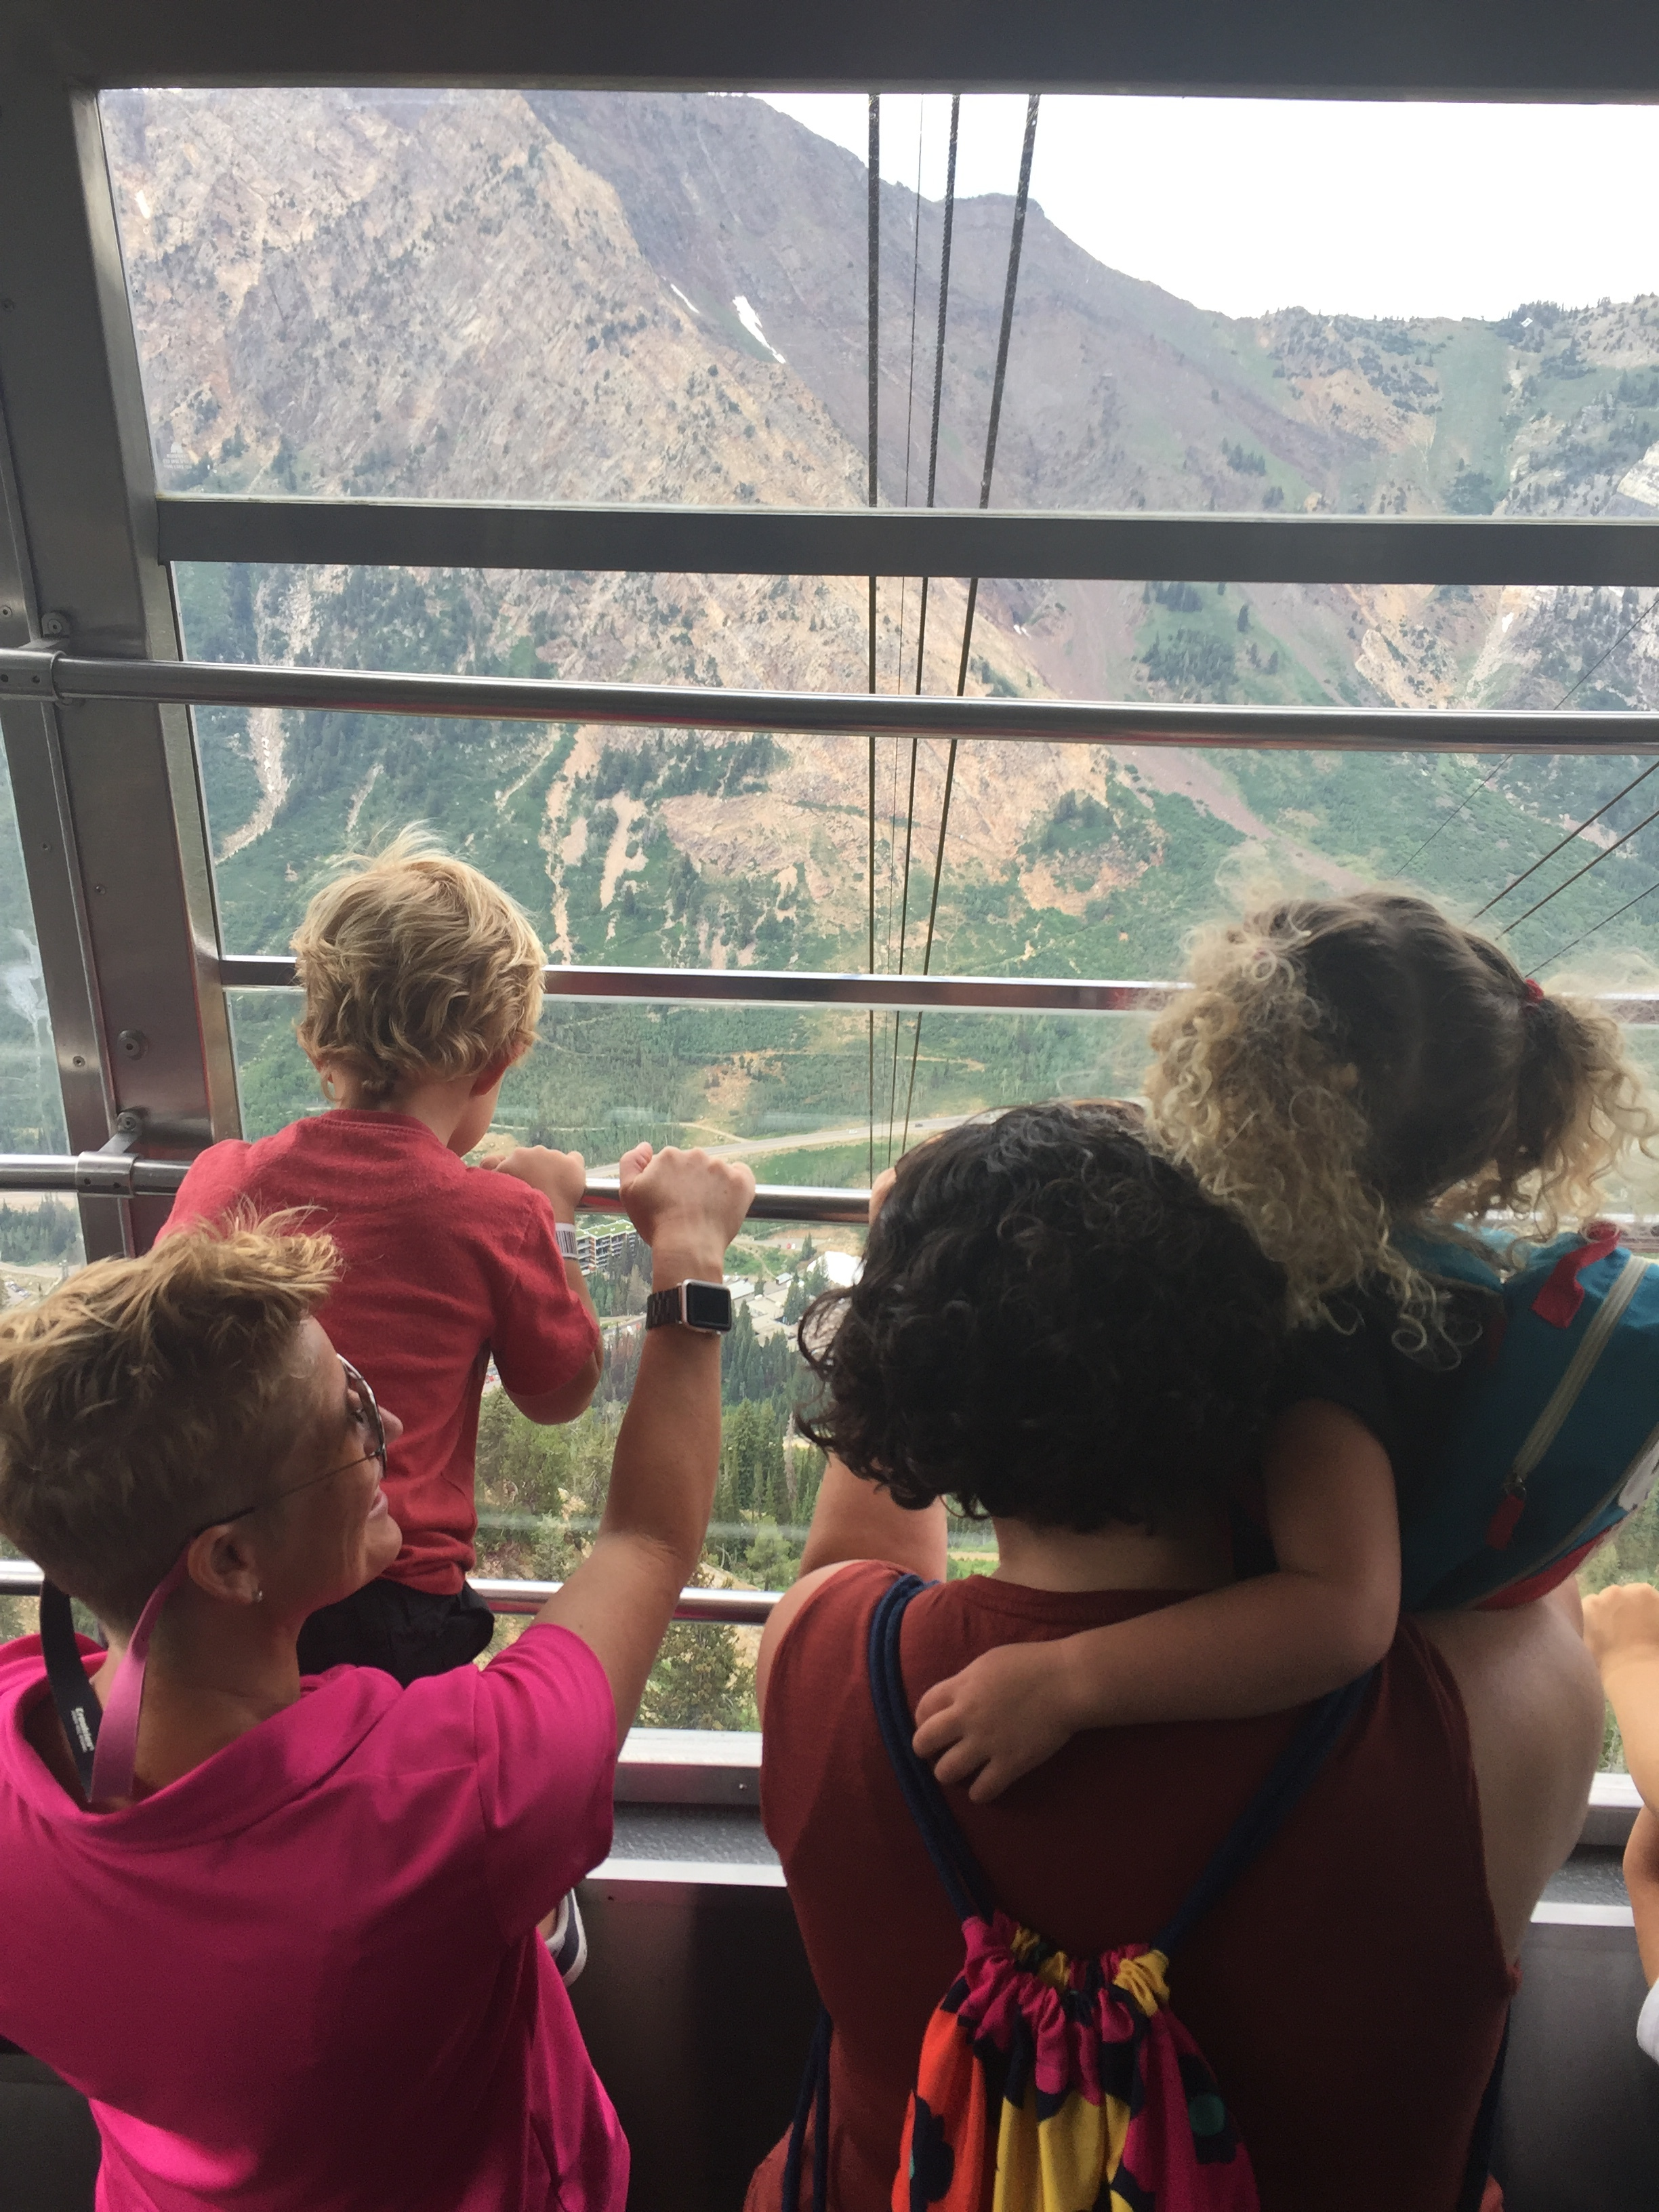 Riding the gondola - a first for all of us!